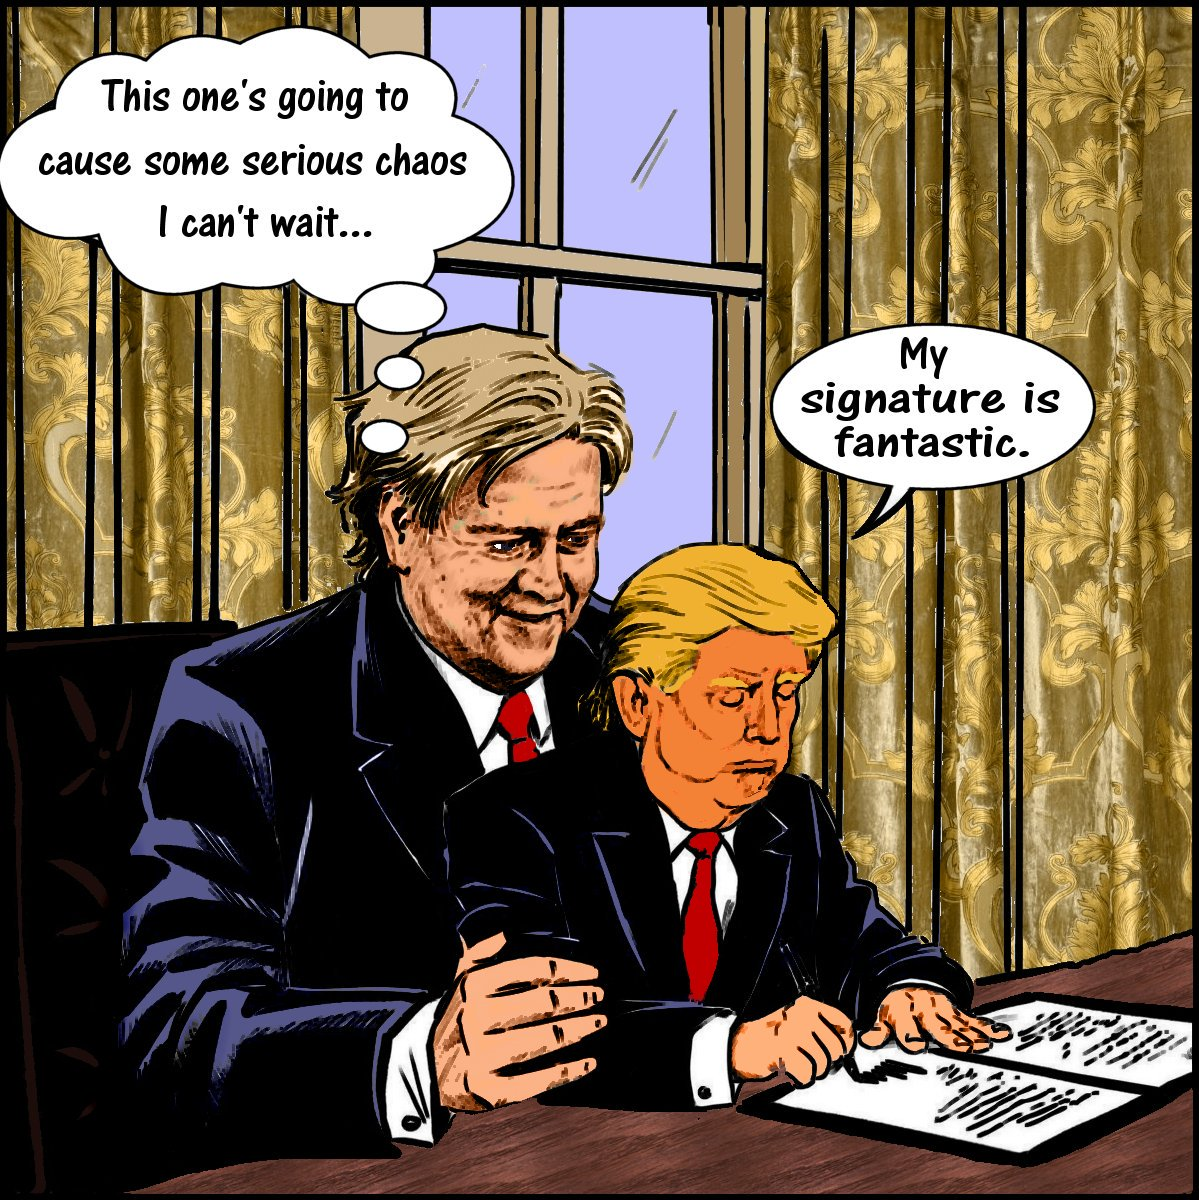 #TheResistance #BanBannon  Demand to GET Bannon OFF of the National Security Council  Senate 866-985-2543 House 866-948-8977  #Resist<br>http://pic.twitter.com/jnmyLtRR2c